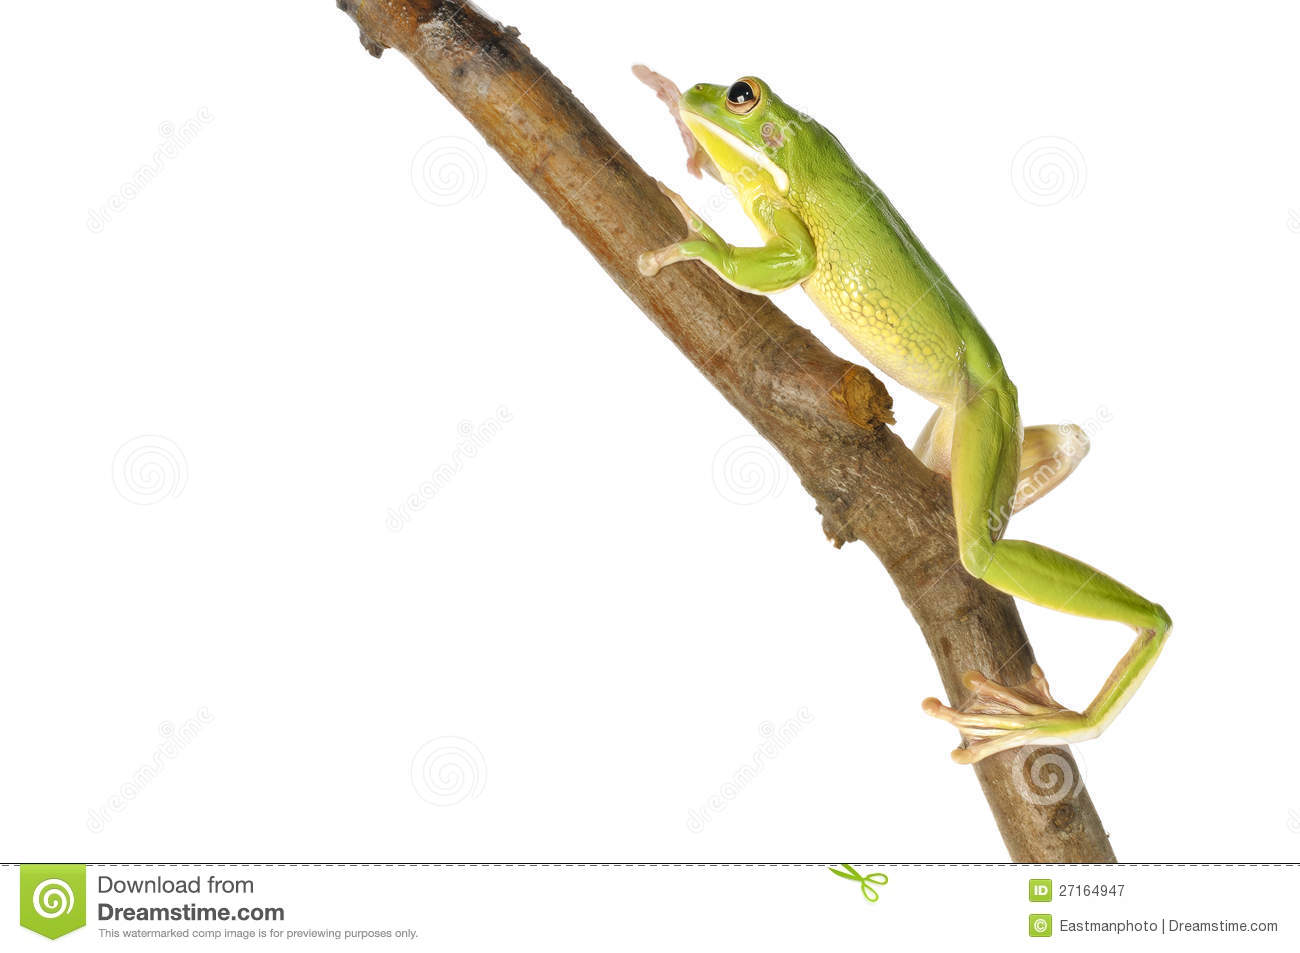 White-lipped Tree Frog clipart #18, Download drawings